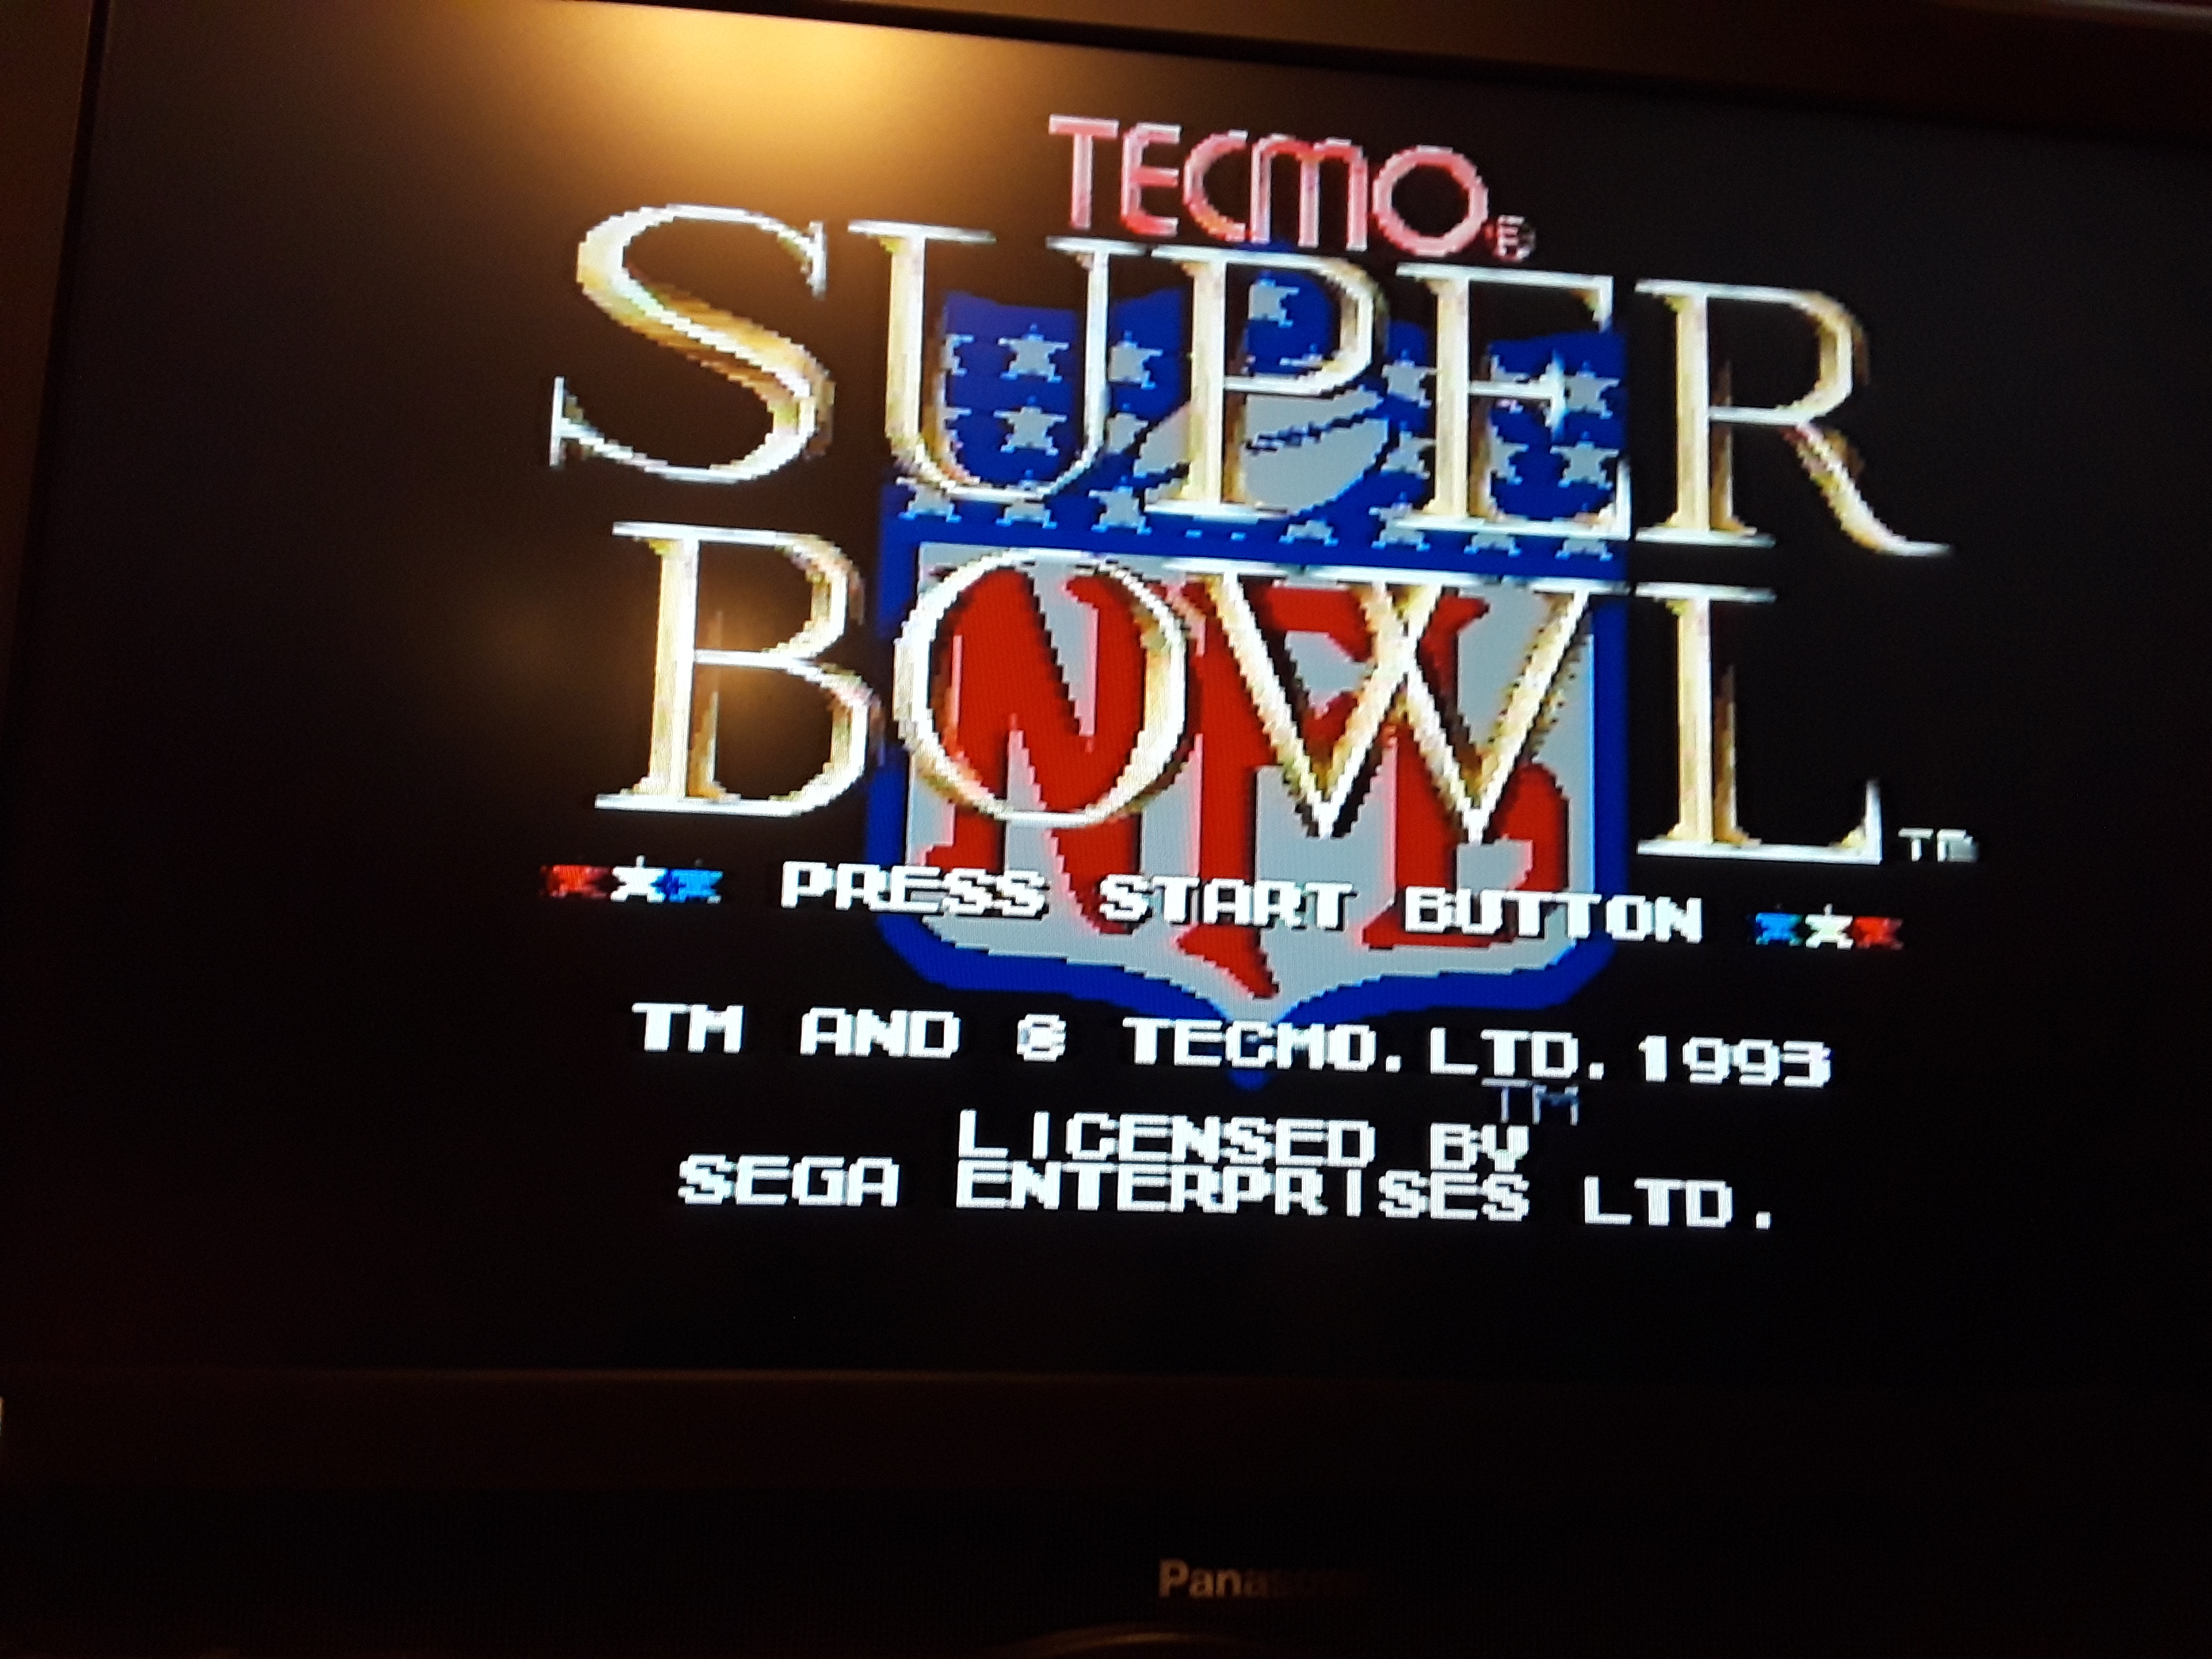 Tecmo Super Bowl [Least 1st Downs Allowed] [Pro Bowl] 5 points